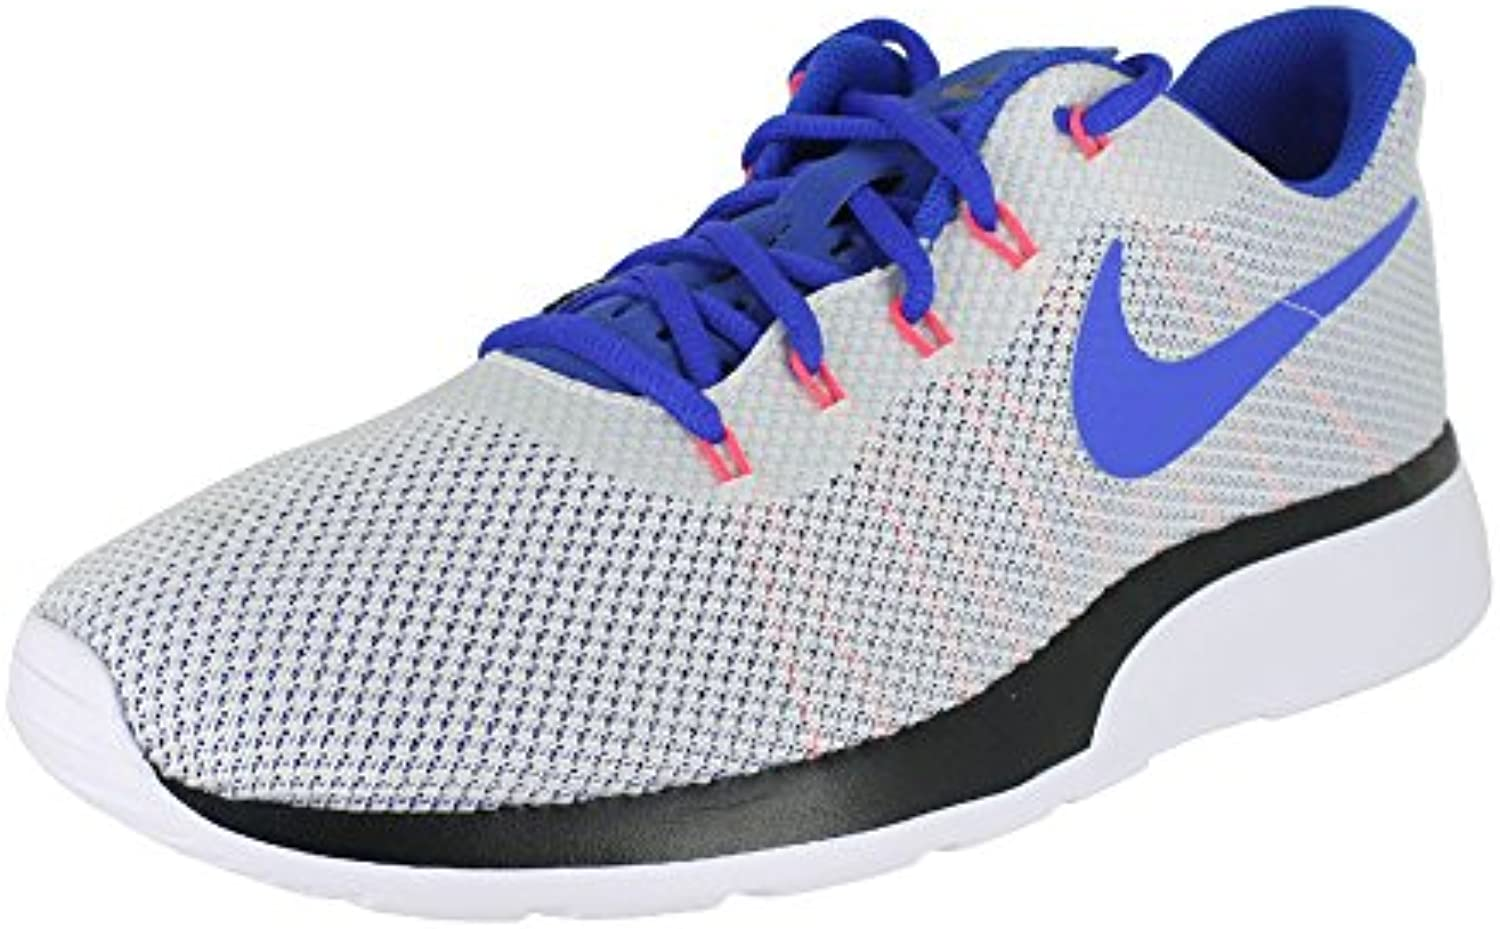 NIKE Men's Tanjun Racer Competition Running Shoes, Multicolour (White/Ultramarine (White/Ultramarine (White/Ultramarine 100), 6.5 UK B008S5NHYU Parent 7a4d18